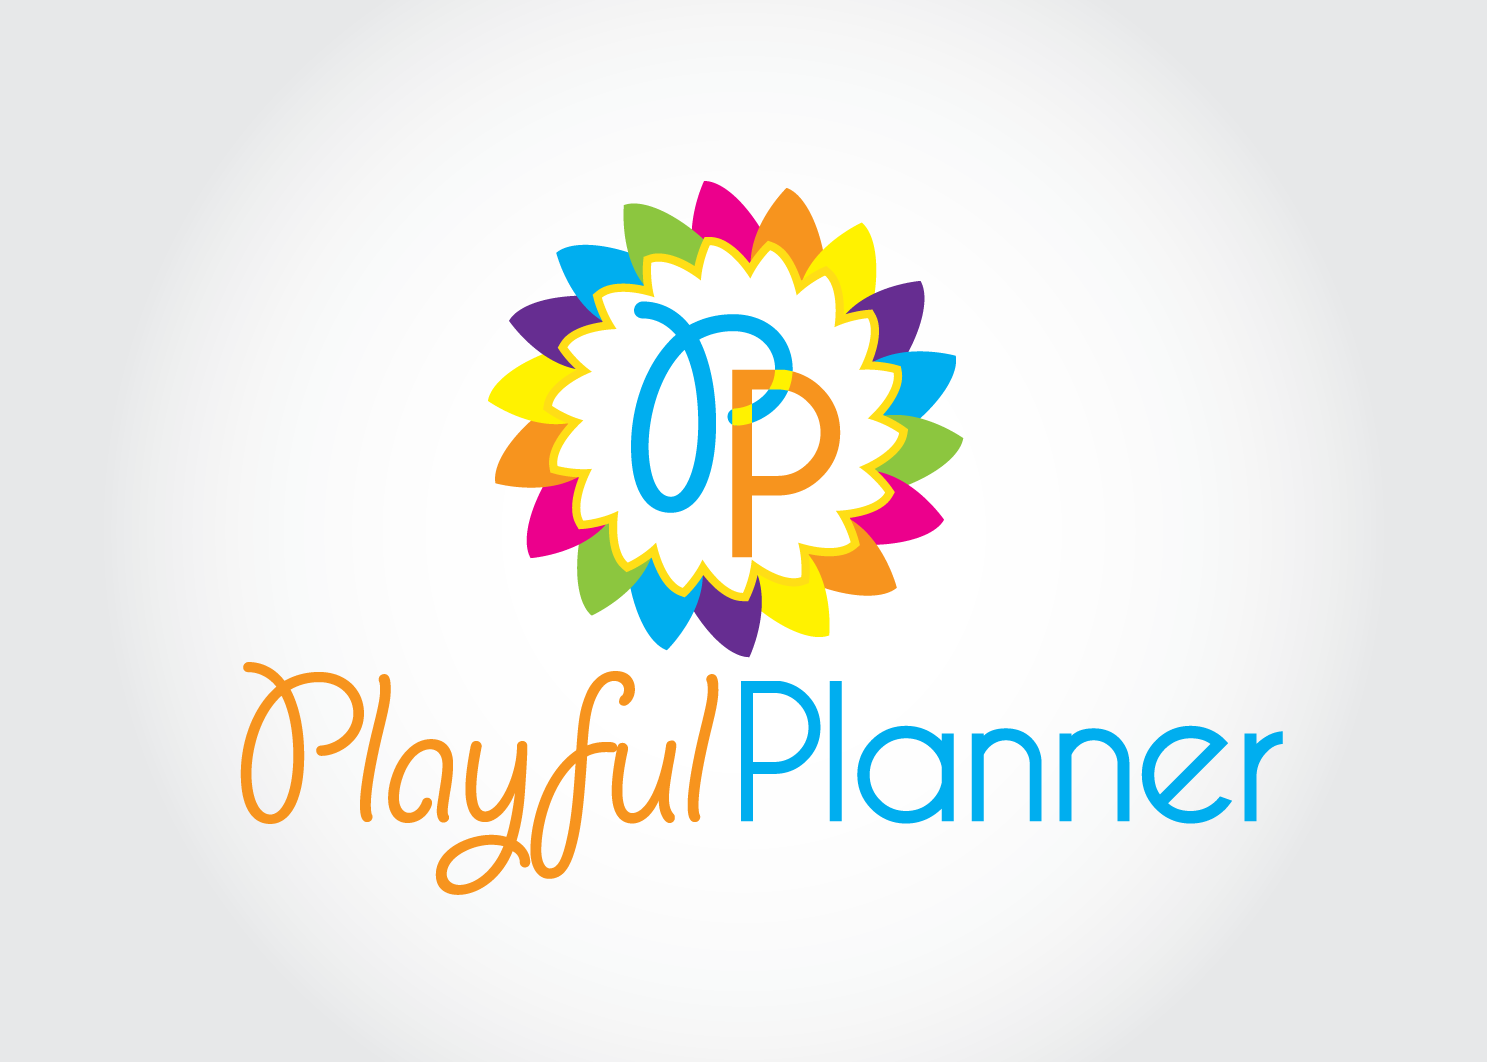 """Playful Planner"" needs a new logo"